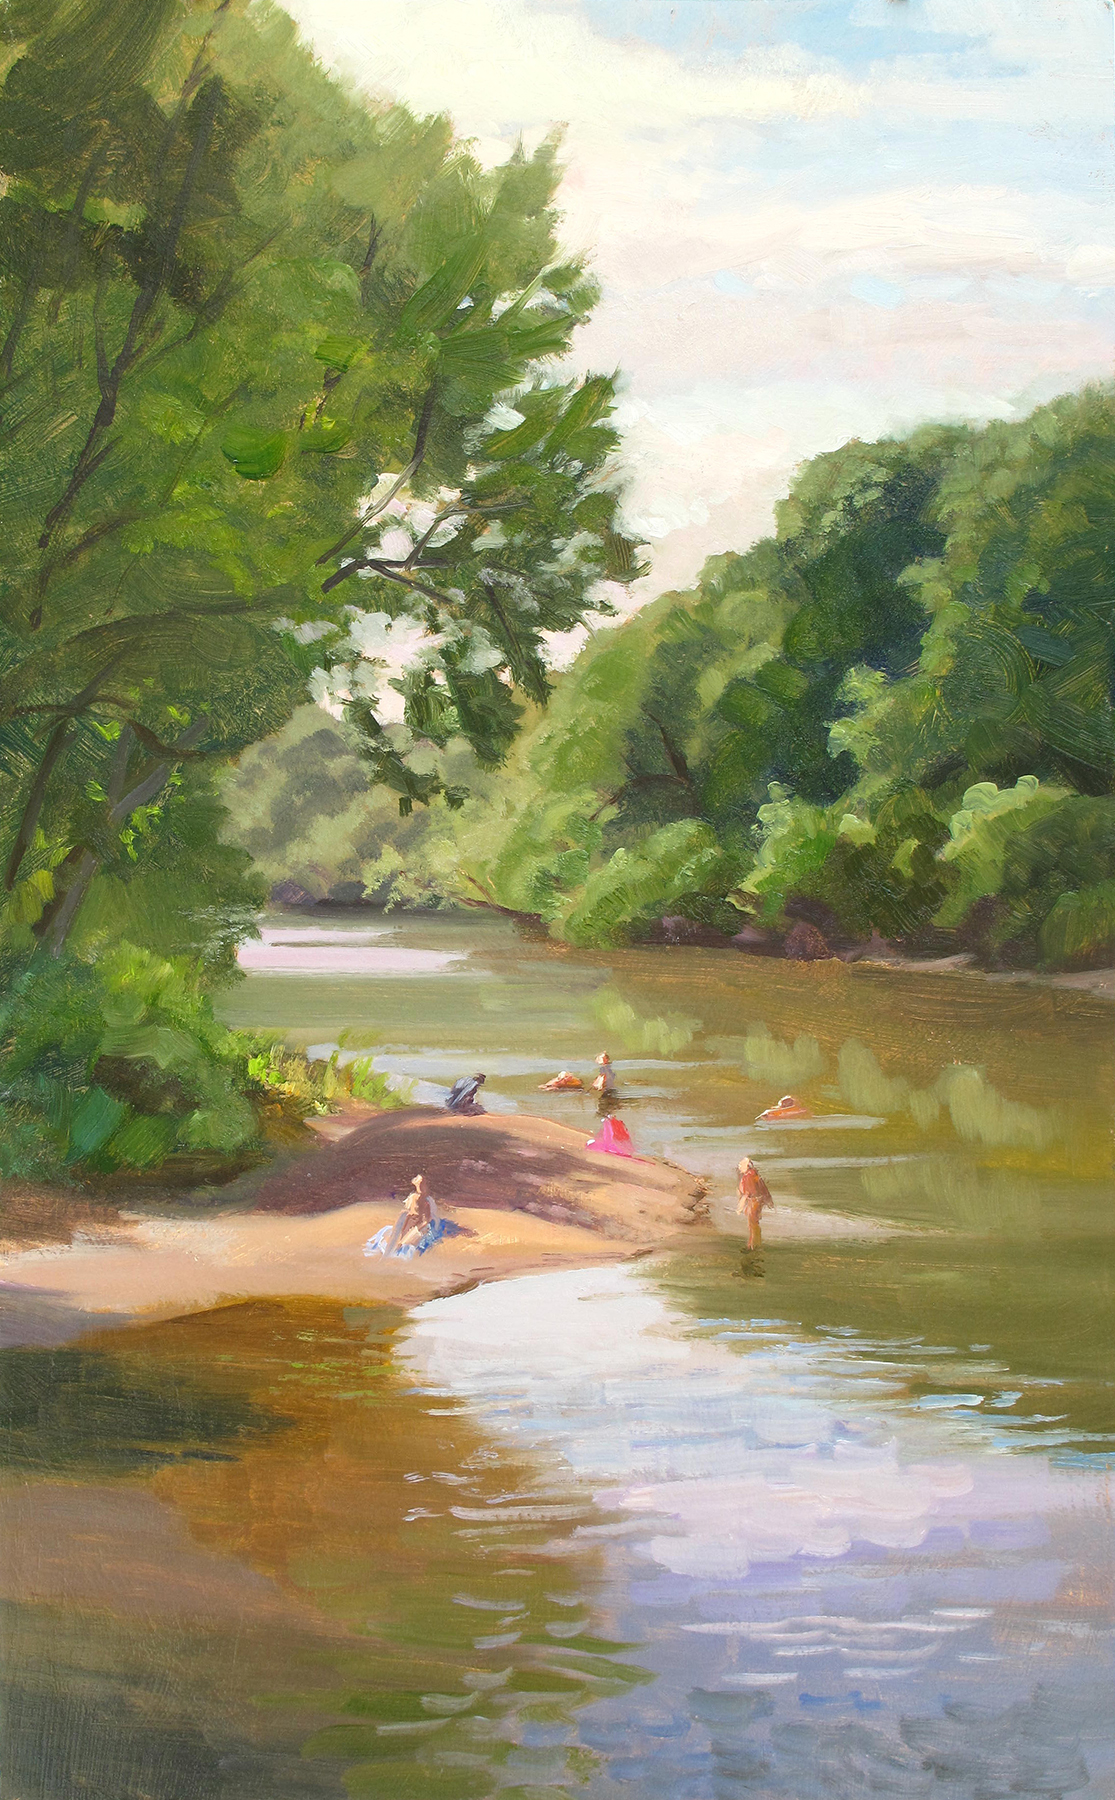 Rum River    20 x 12 oil on panel  Painted on location at City Park in Cambridge, Minnesota.